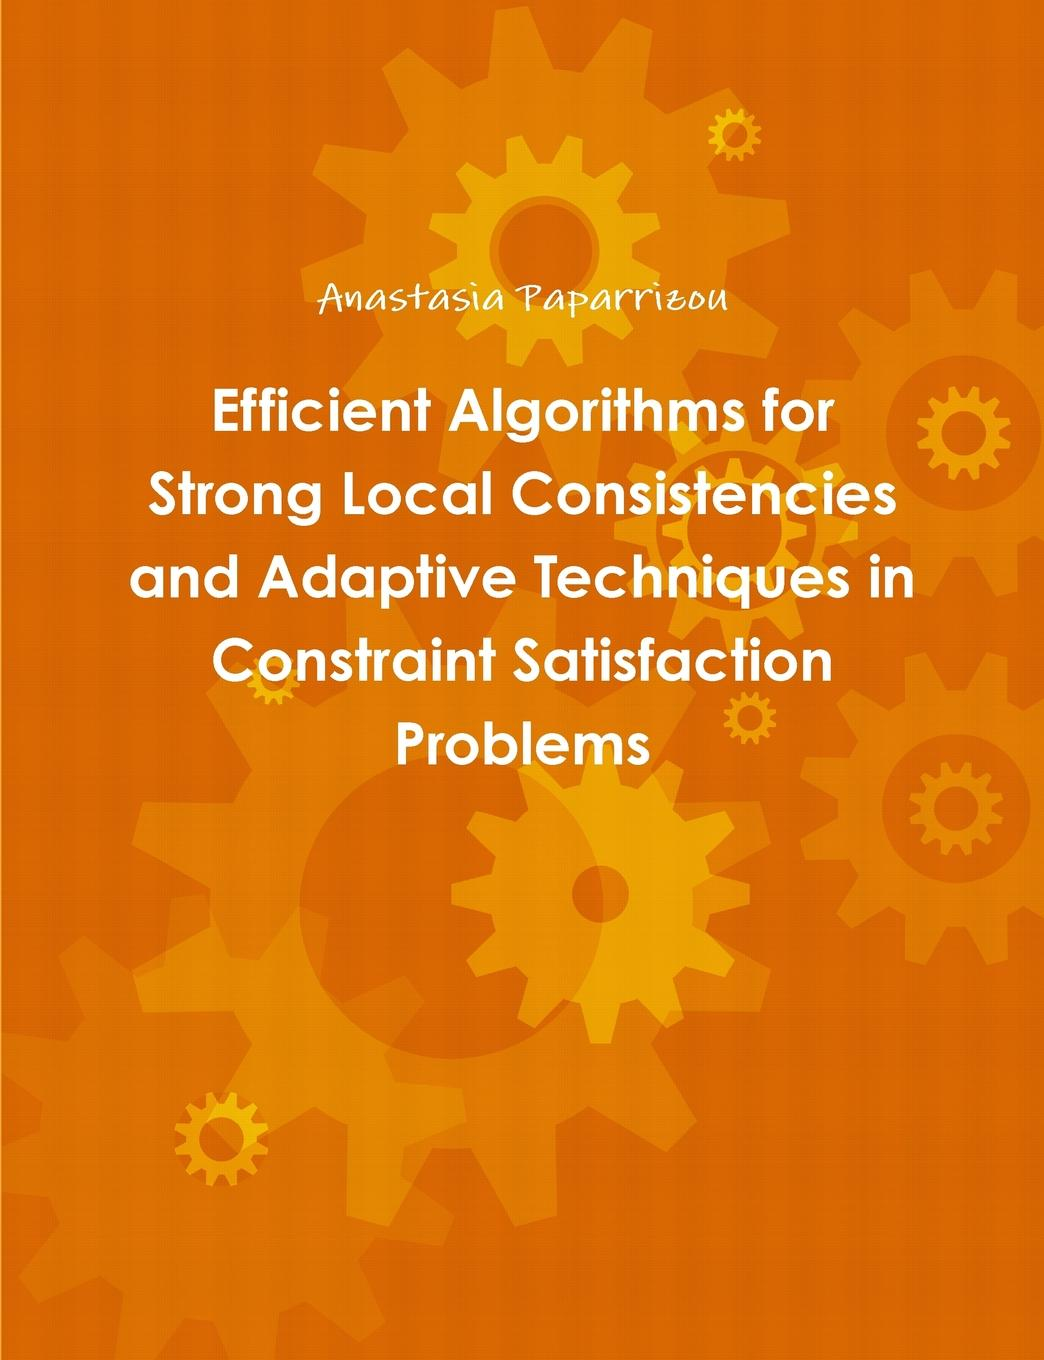 лучшая цена Anastasia Paparrizou Efficient Algorithms for Strong Local Consistencies and Adaptive Techniques in Constraint Satisfaction Problems